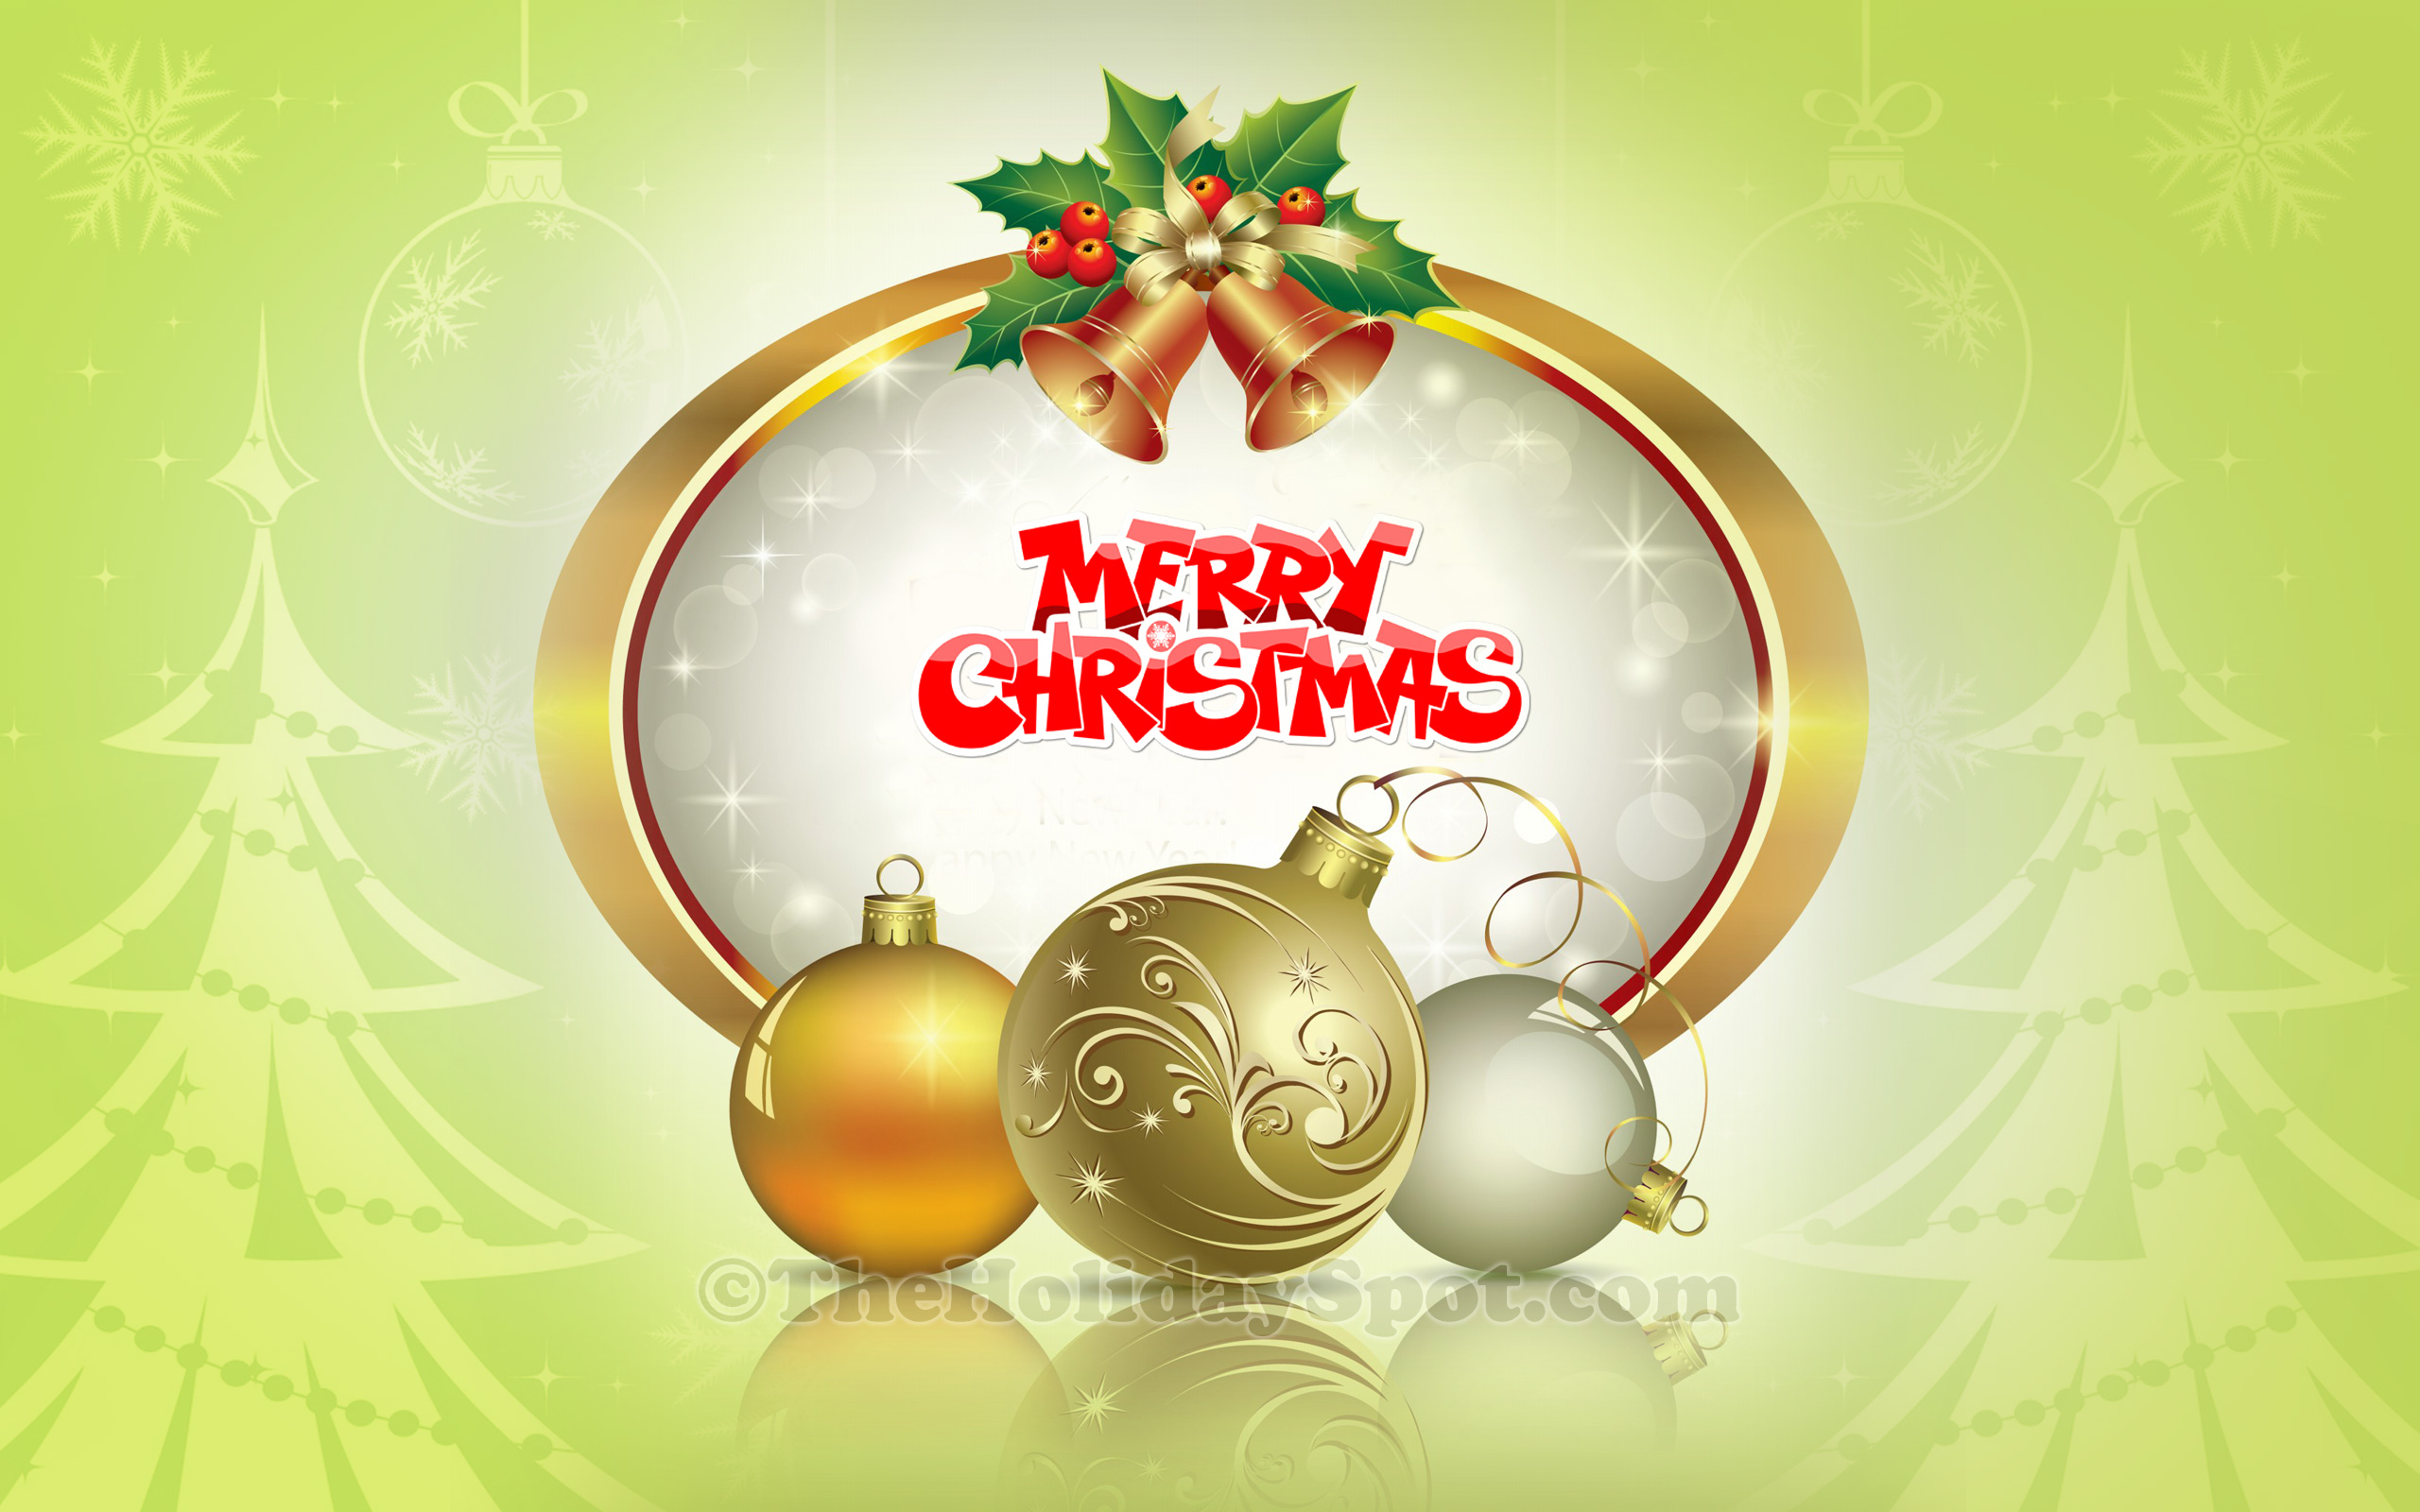 Christmas Wallpaper Images